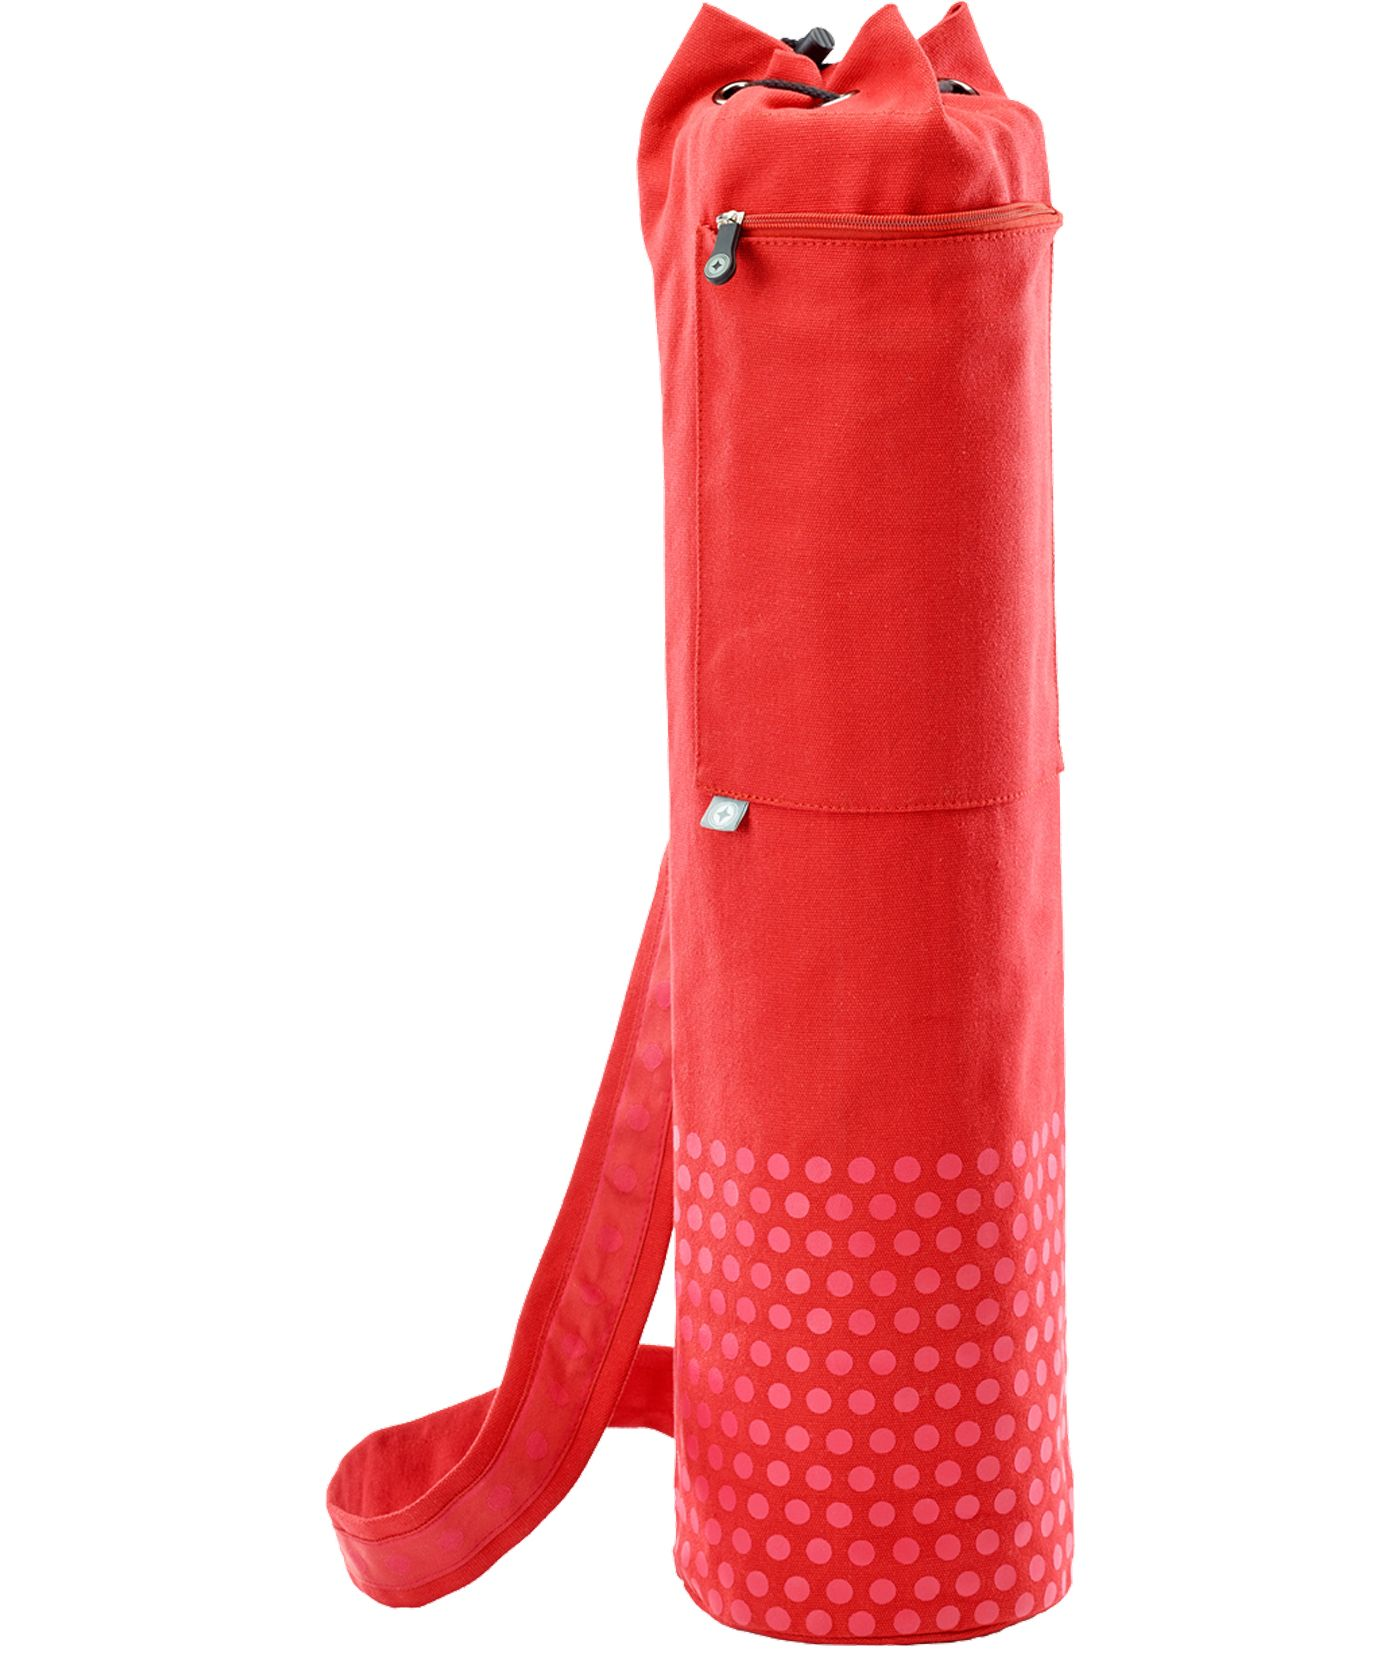 STOTT PILATES Yoga Mat Bag